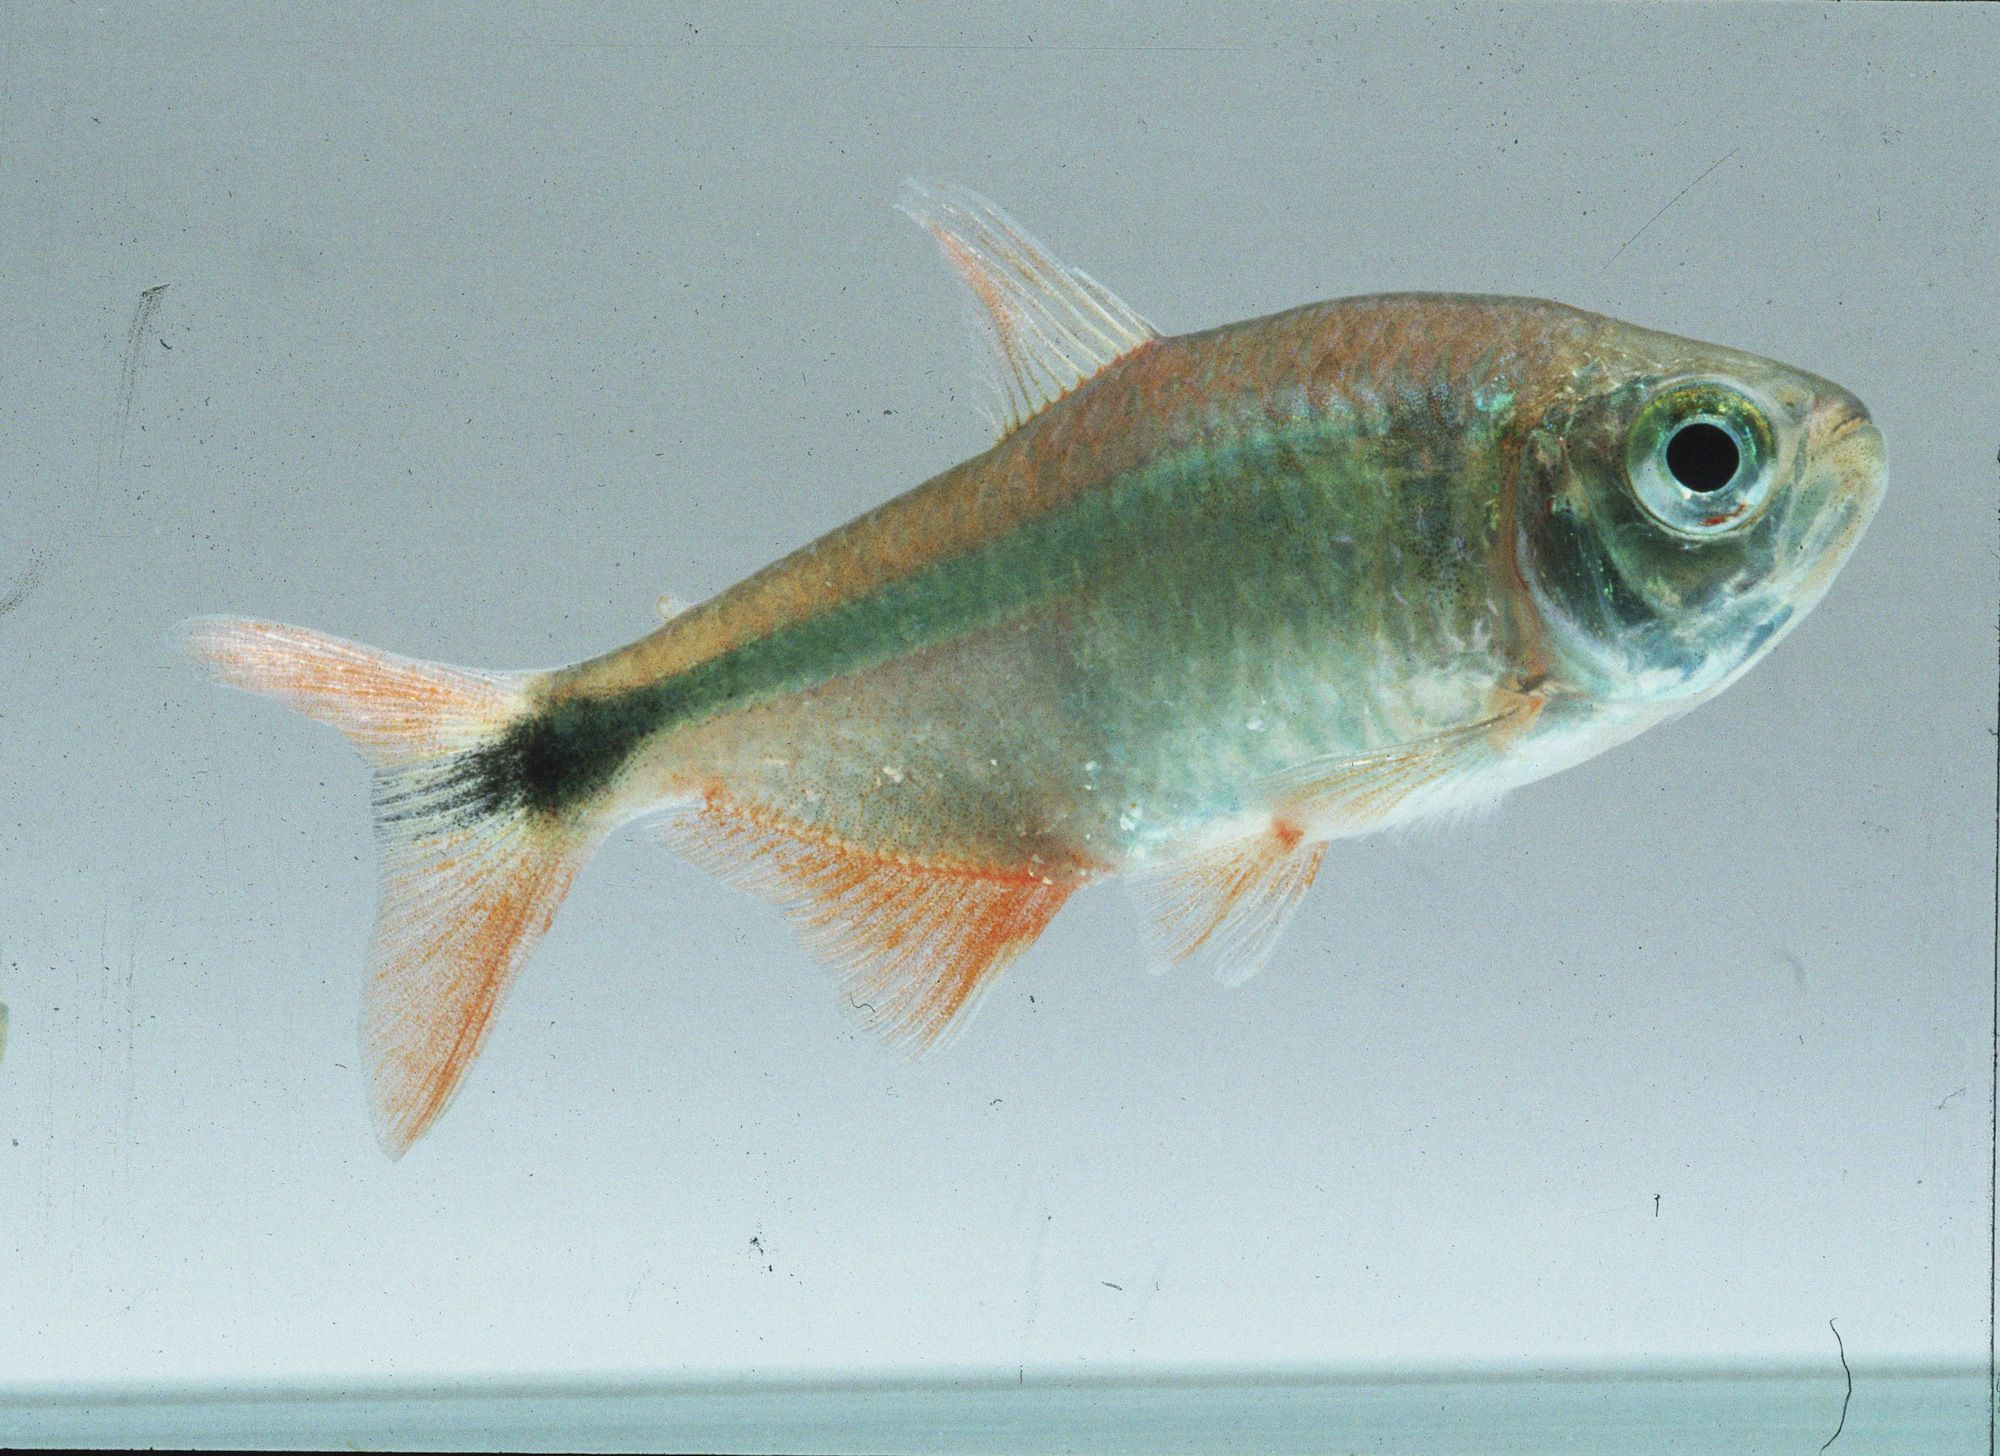 Learn More About The Care And Breeding Of The Buenos Aires Tetra A Long Time Favorite In Home Aquariums Tetra Tetra Fish Home Aquarium